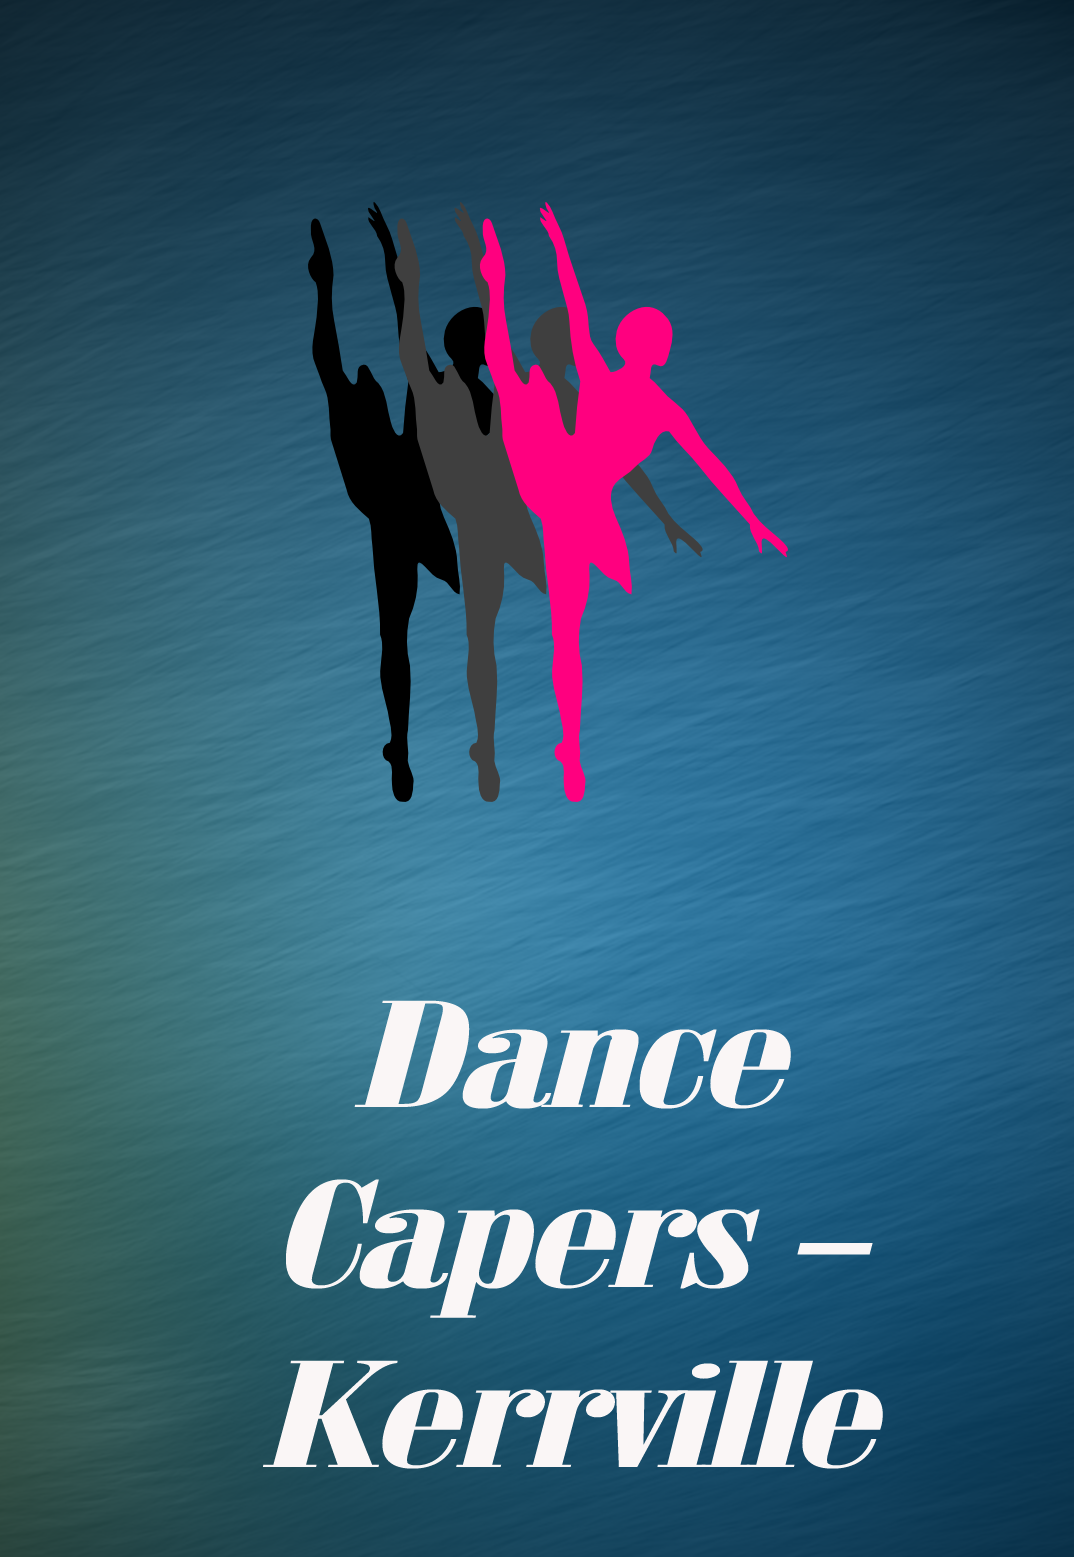 DANCE CAPERS RECITAL 2016 SUNDAY, MAY 15, 2016